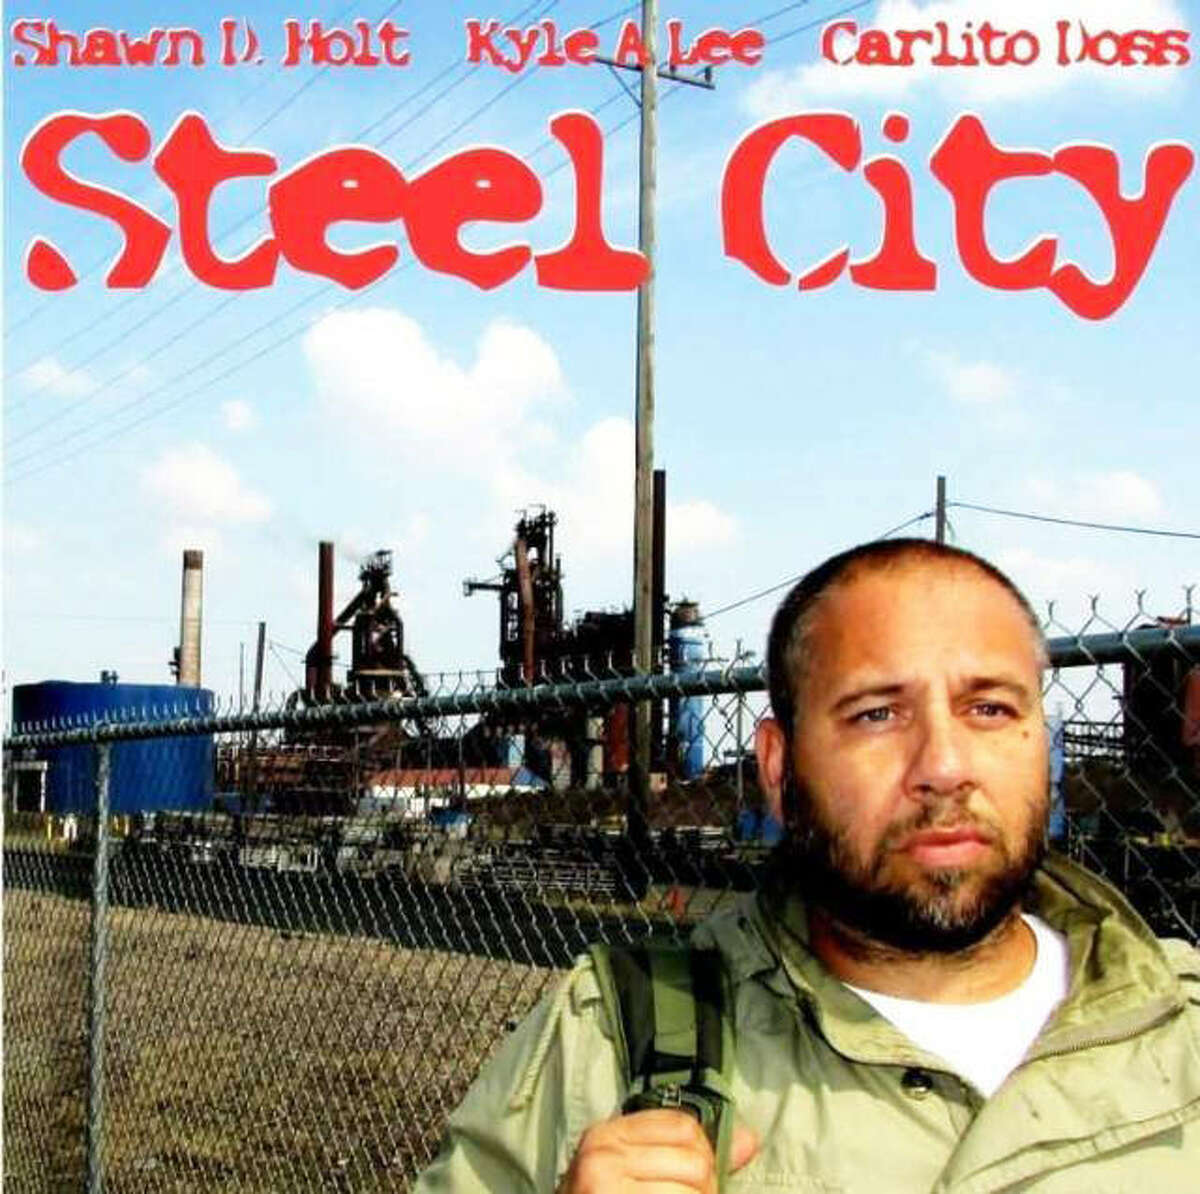 """Granite City High School graduate Shawn D. Holt, foreground, stars in """"Steel City G.C.,"""" an independent film shot entirely in Granite City in partnership with Phoenix-Jagger Studios and Red Reflection Industrial Ink, the latter owned by southern Illinois filmmaker Elle Mercurio-Cherrier. """"Steel City G.C."""" is scheduled for release July 4."""